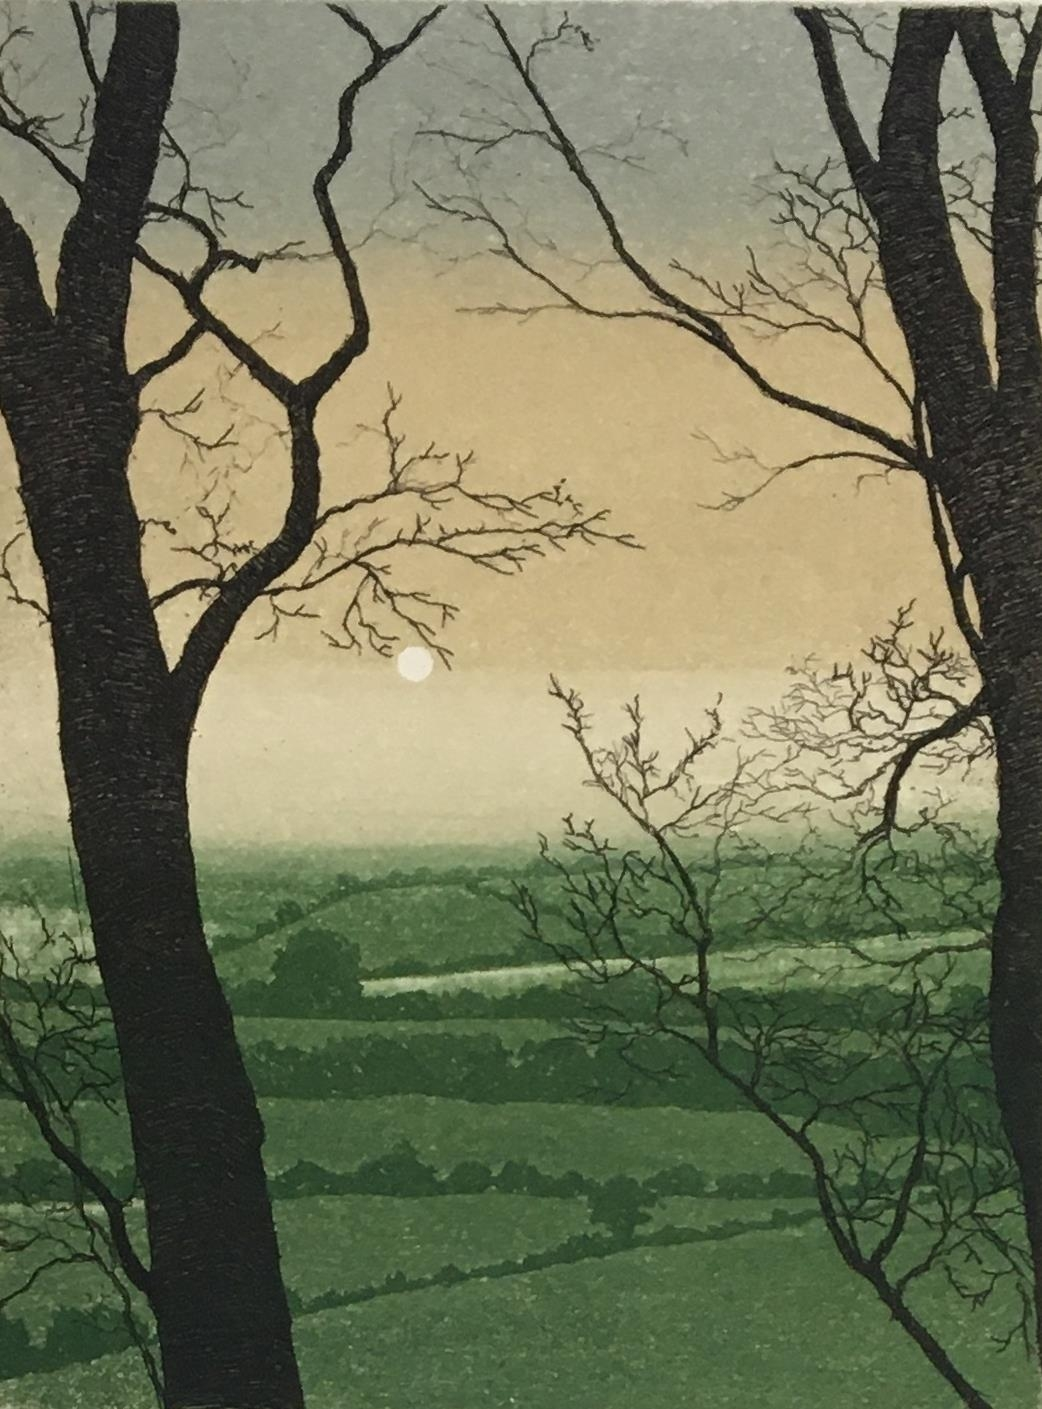 David G Beattie (b.1955) 'Valley Between' and 'Summer Solstice', coloured etchings signed and titled